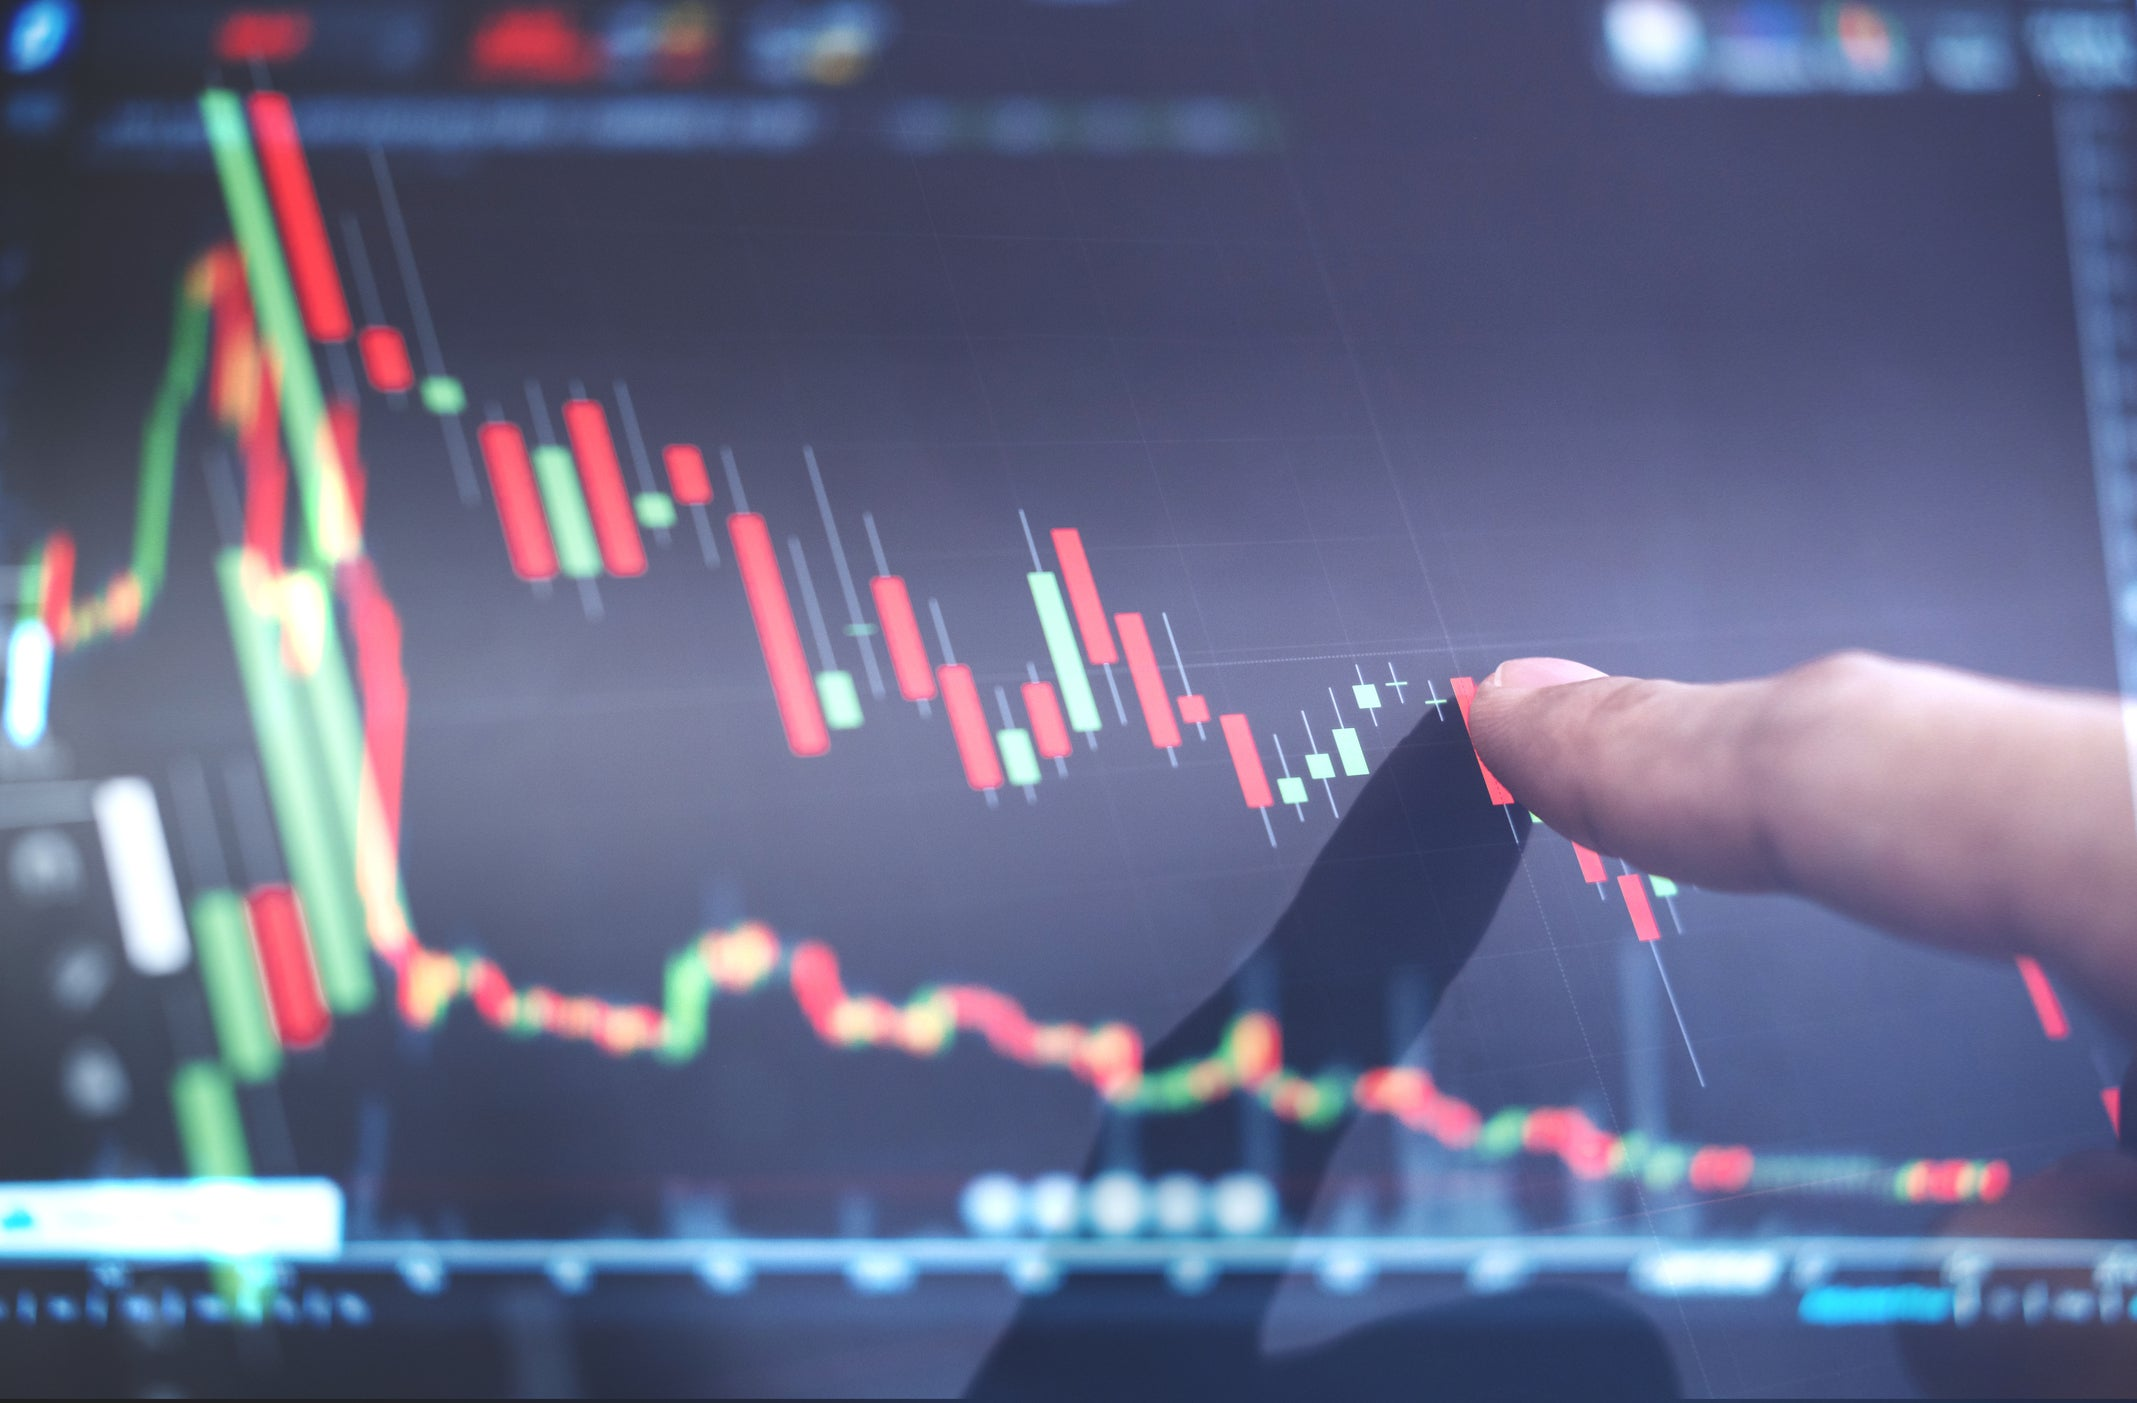 Should You Hold Unprofitable Tech Stocks Going Into a Recession?